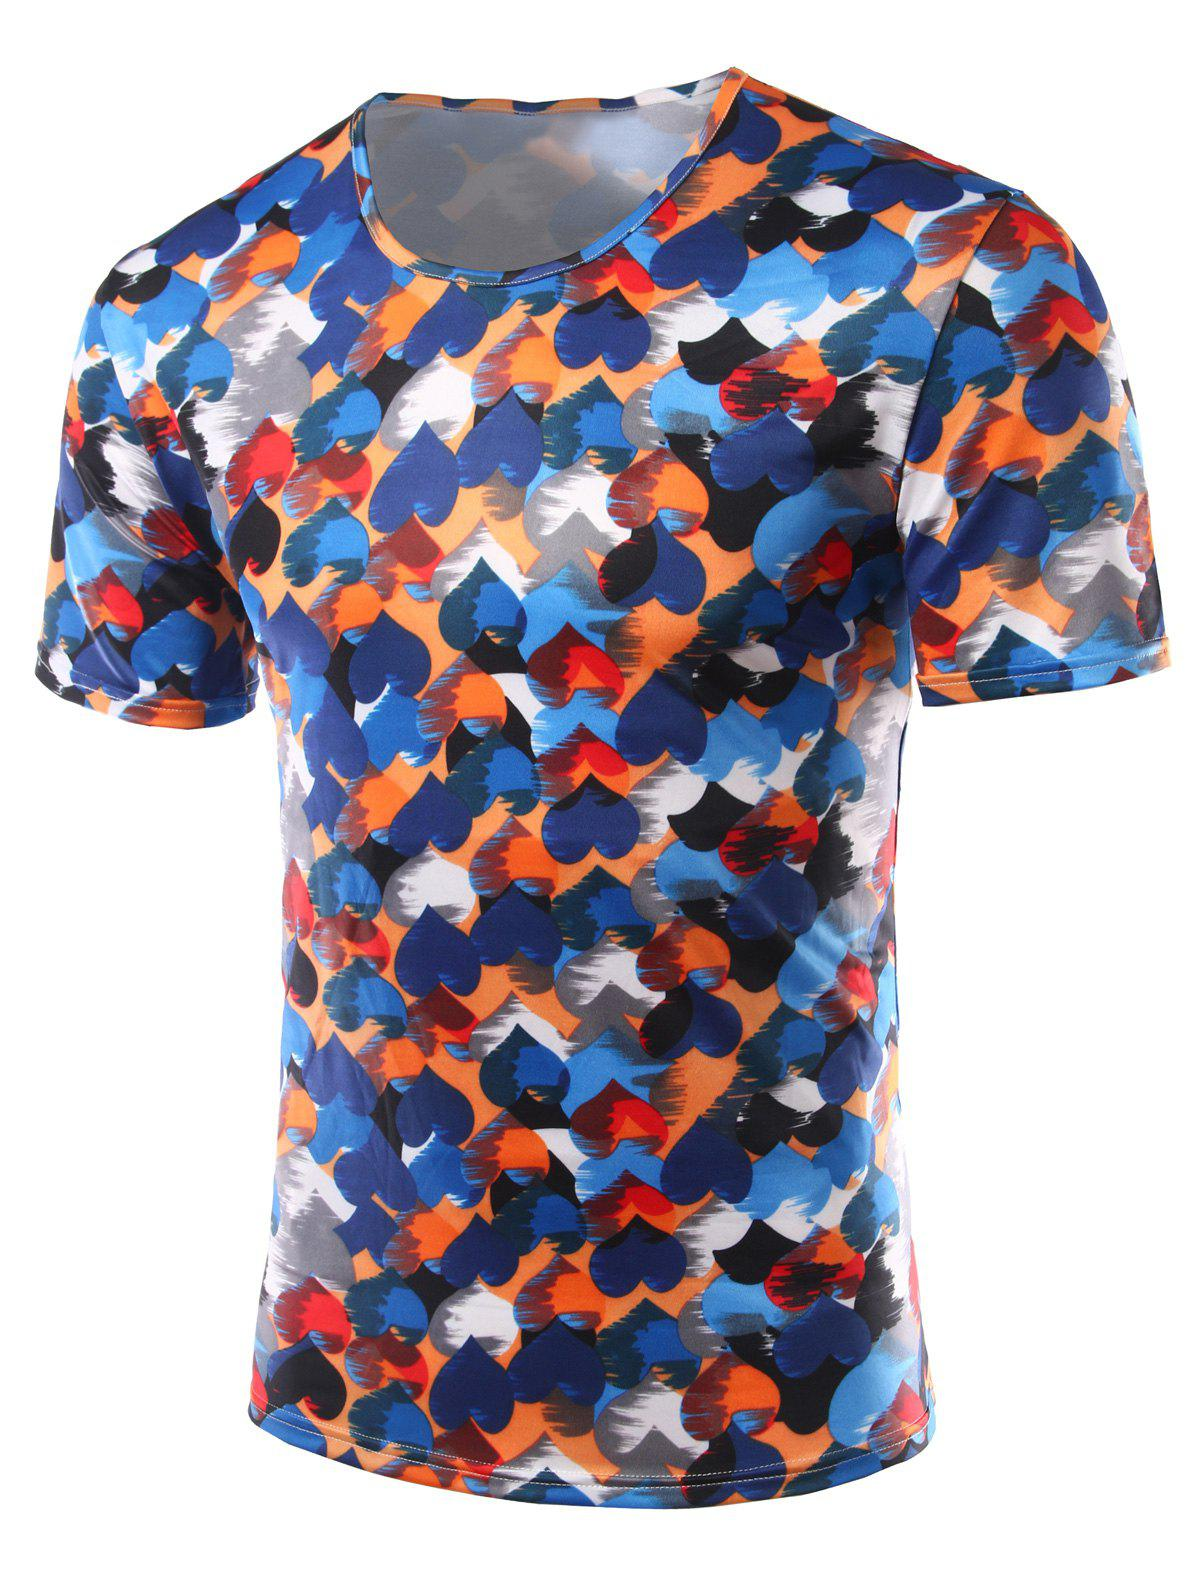 Slim Fit Heart Printing Round Collar Short Sleeves T-Shirts For Men - COLORFUL M